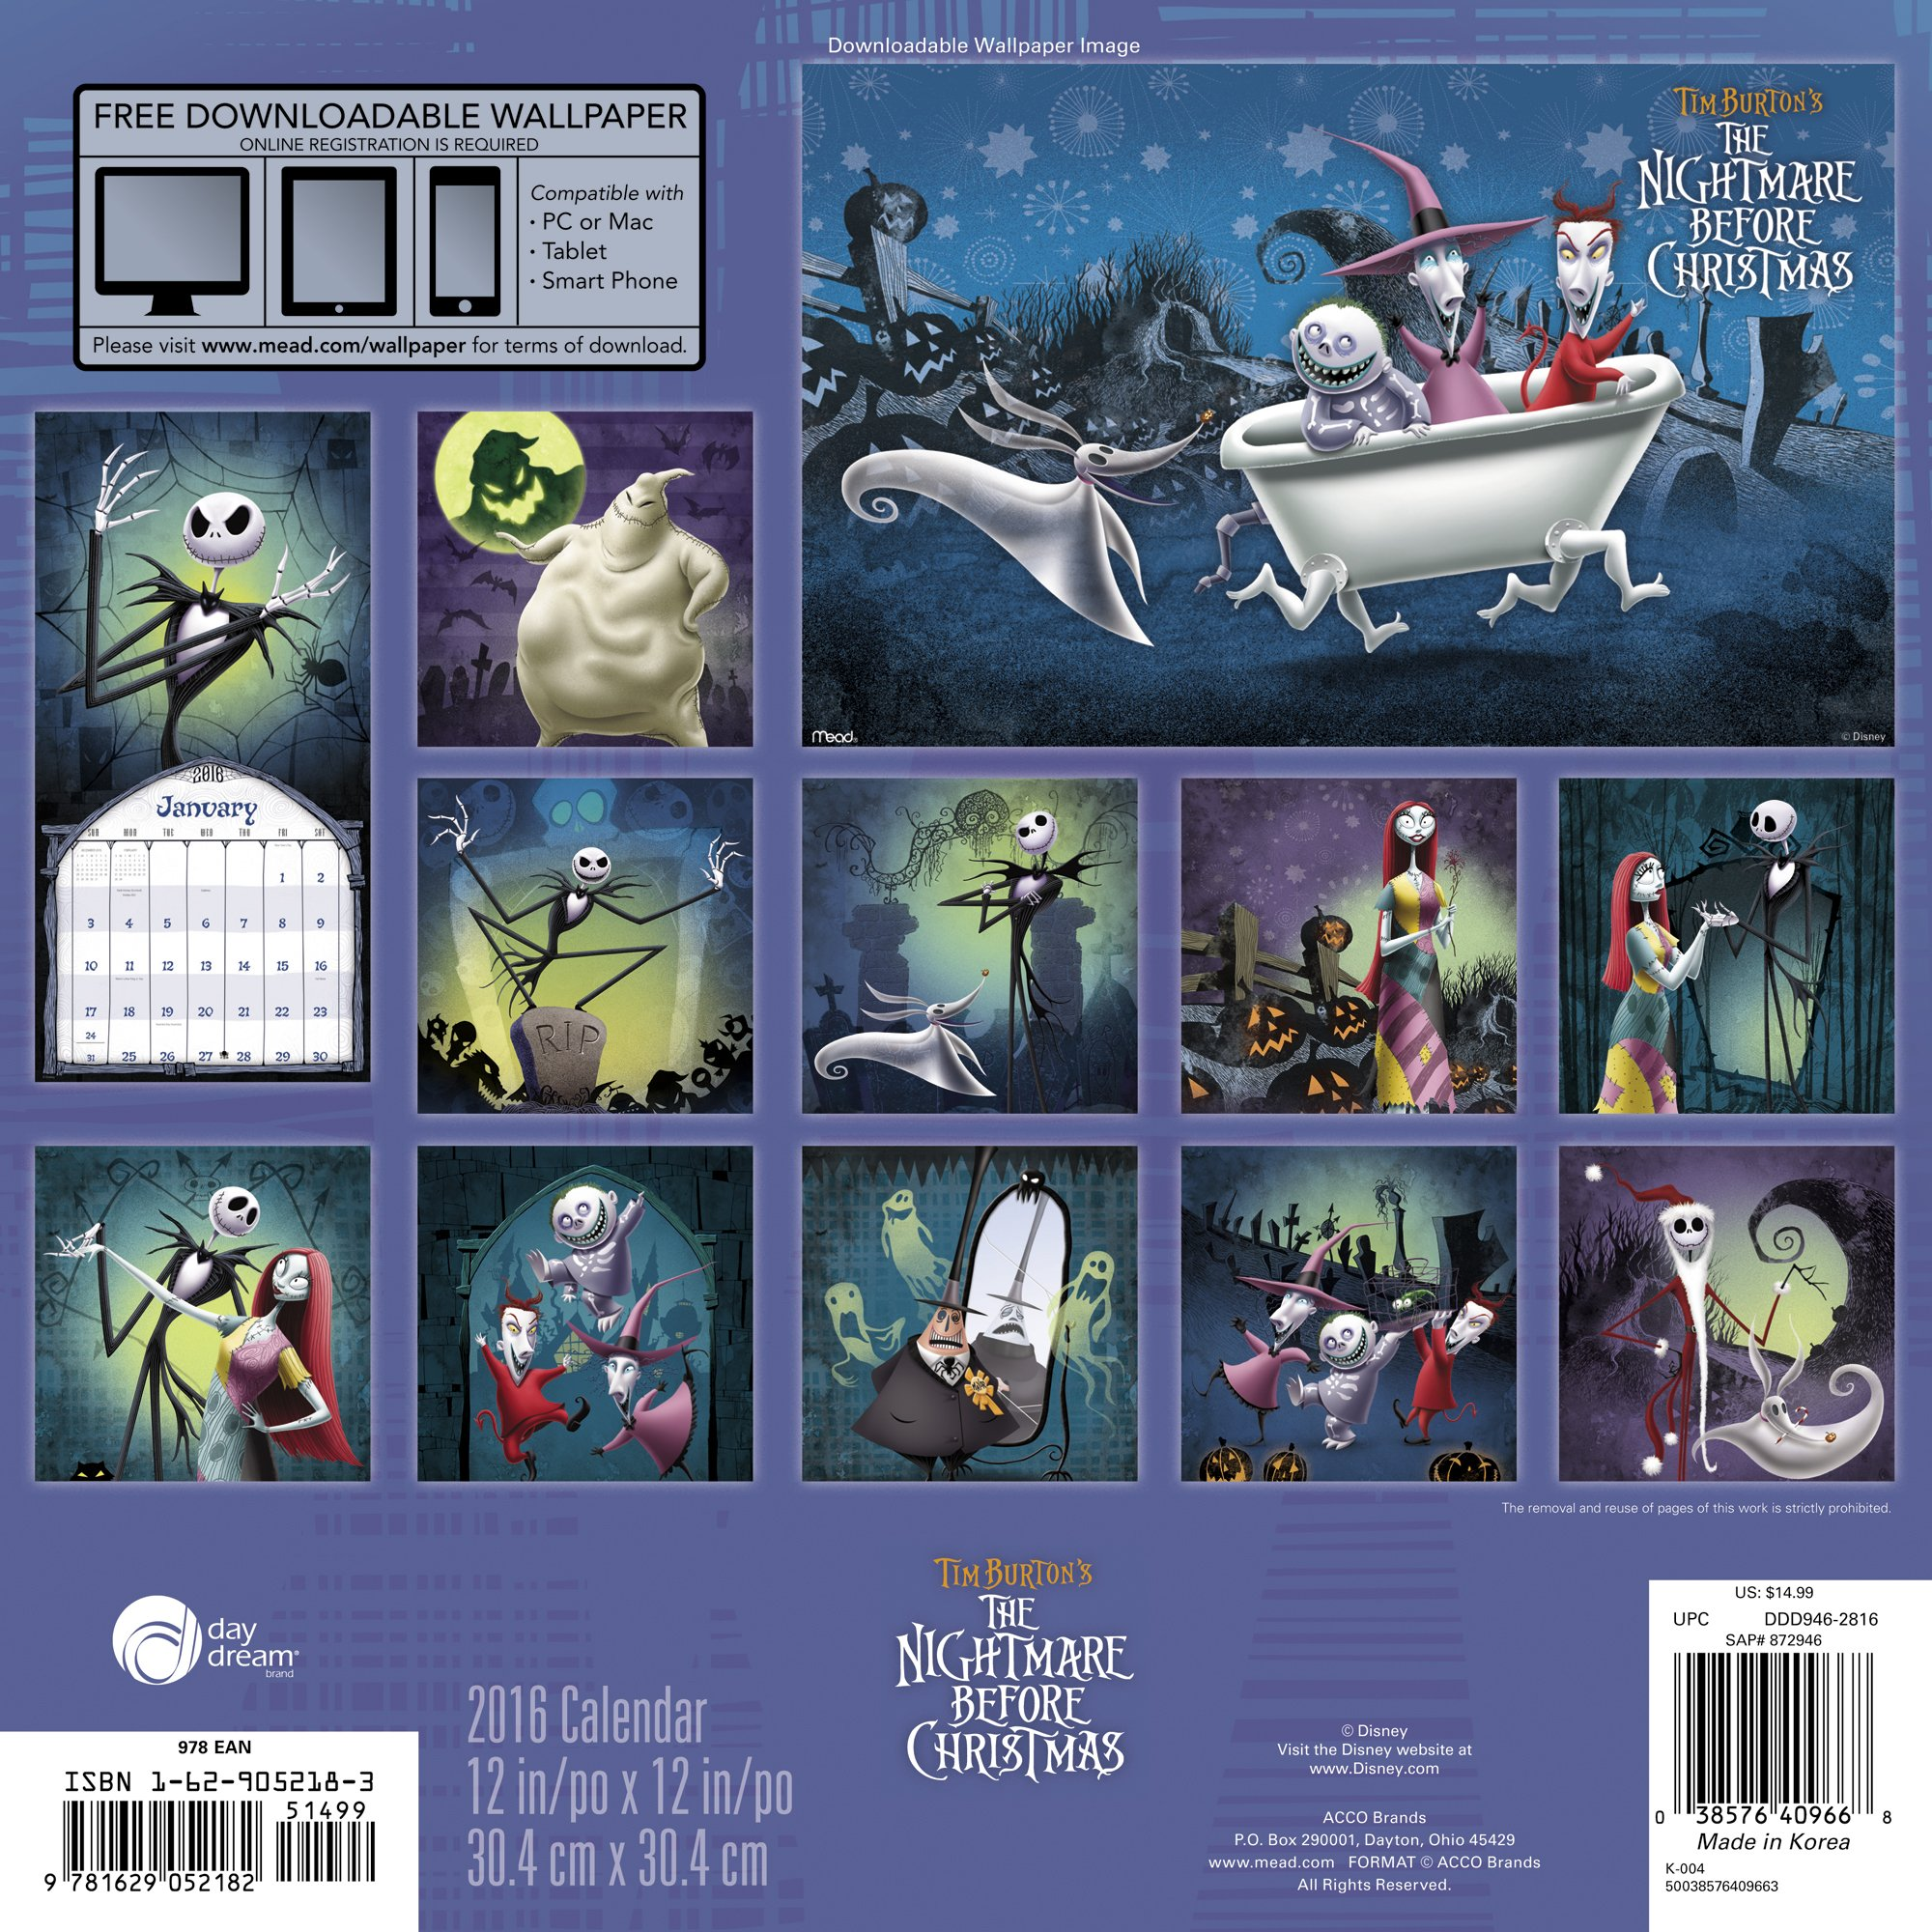 Tim Burton's the Nightmare Before Christmas 2016 Calendar: Free ...